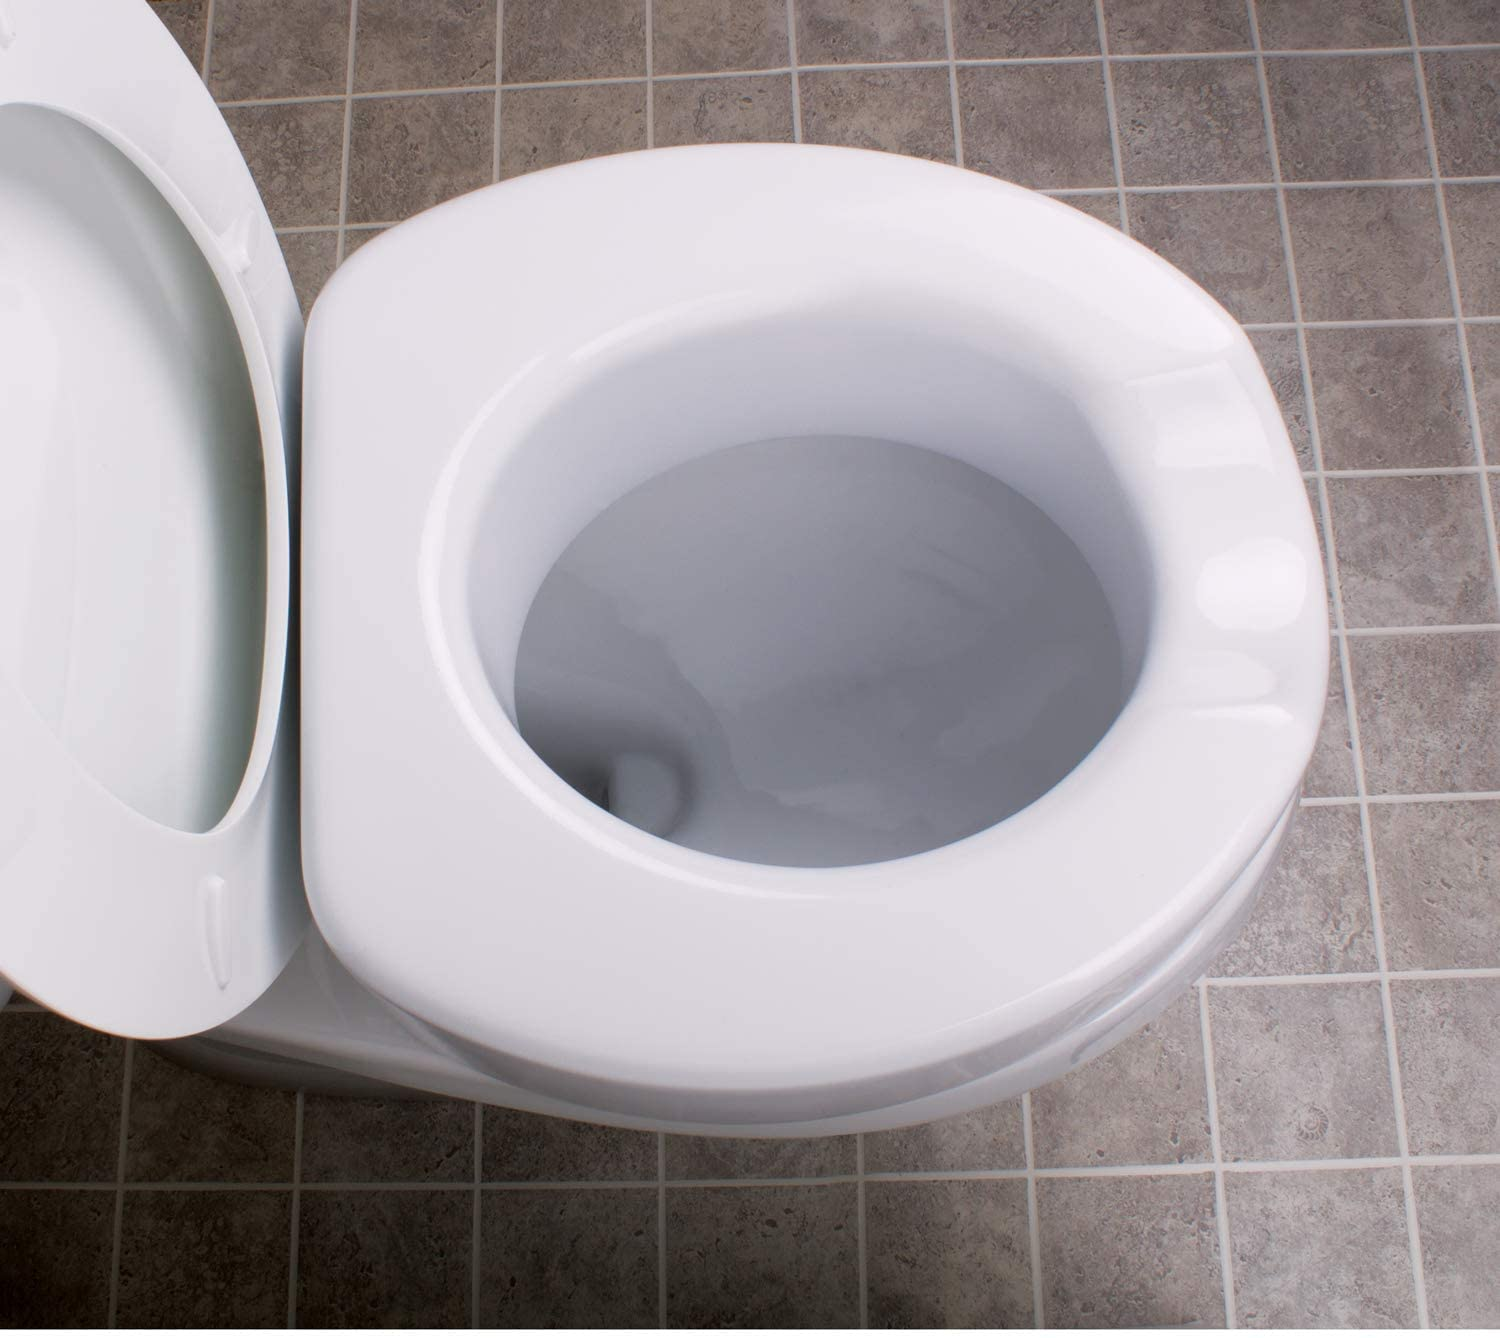 Carex Toilet Seat Riser With Quick Lock Adds 4 Inches Of